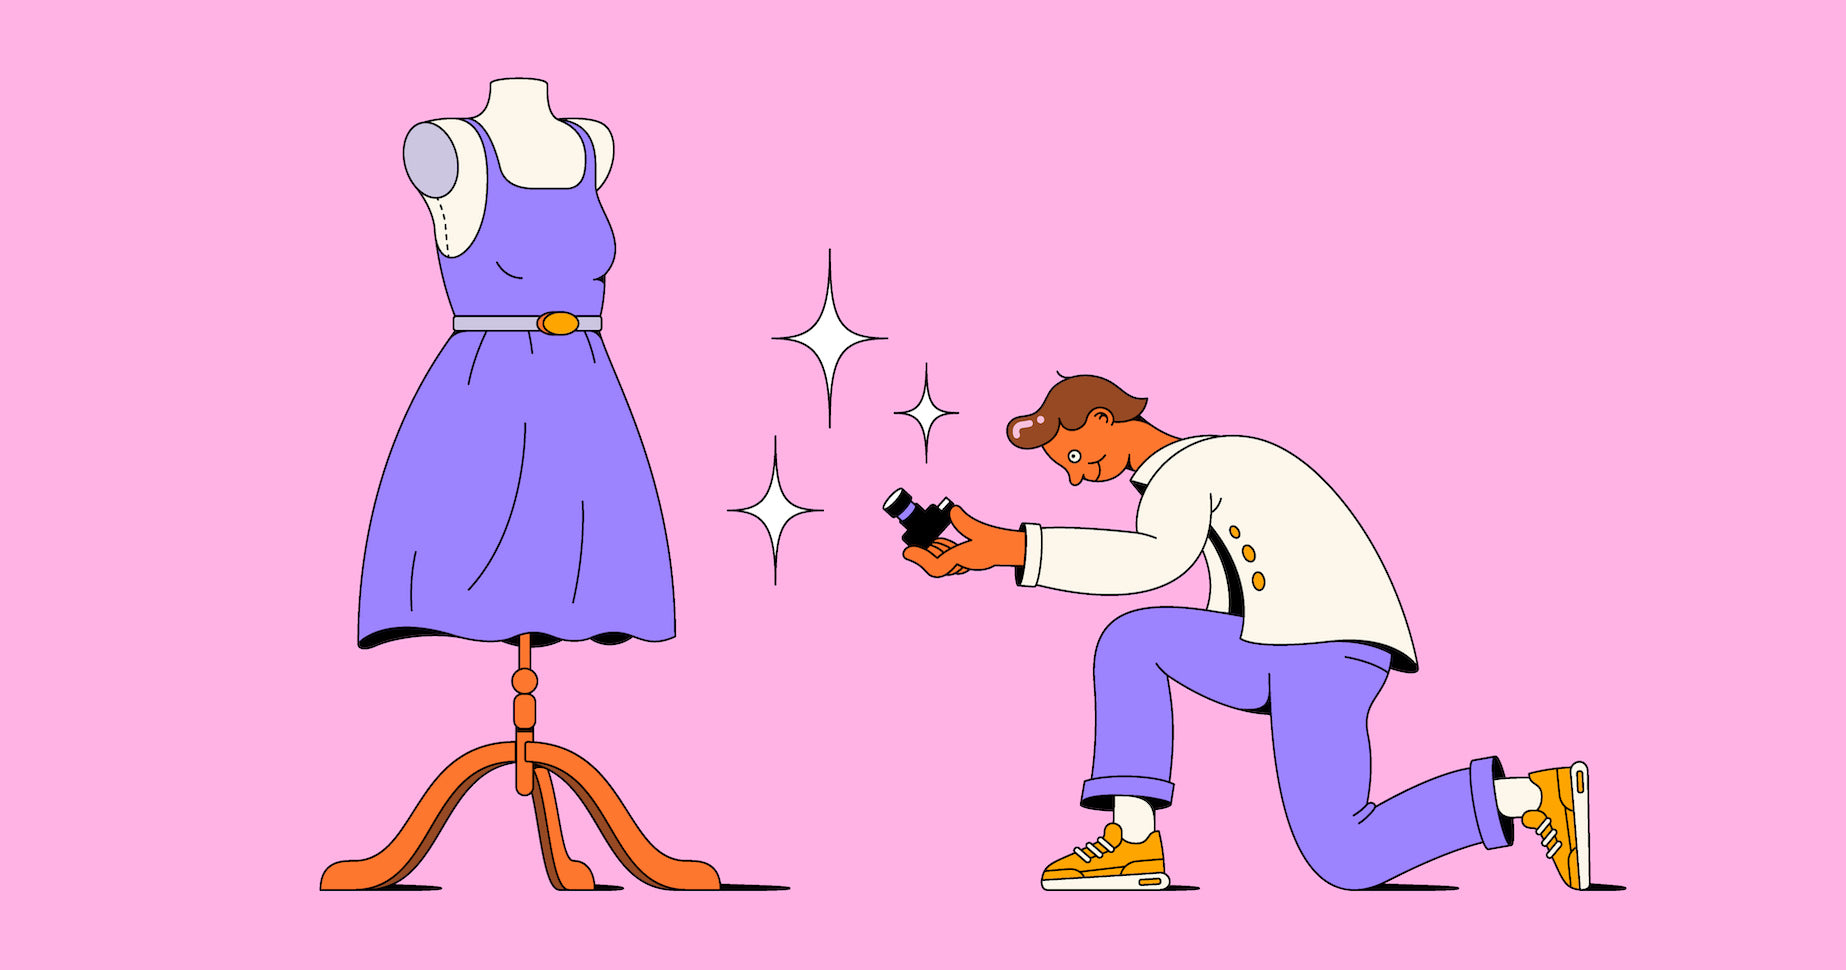 Illustration of a person carefully positioning themselves in preparation for their clothing photography shoot